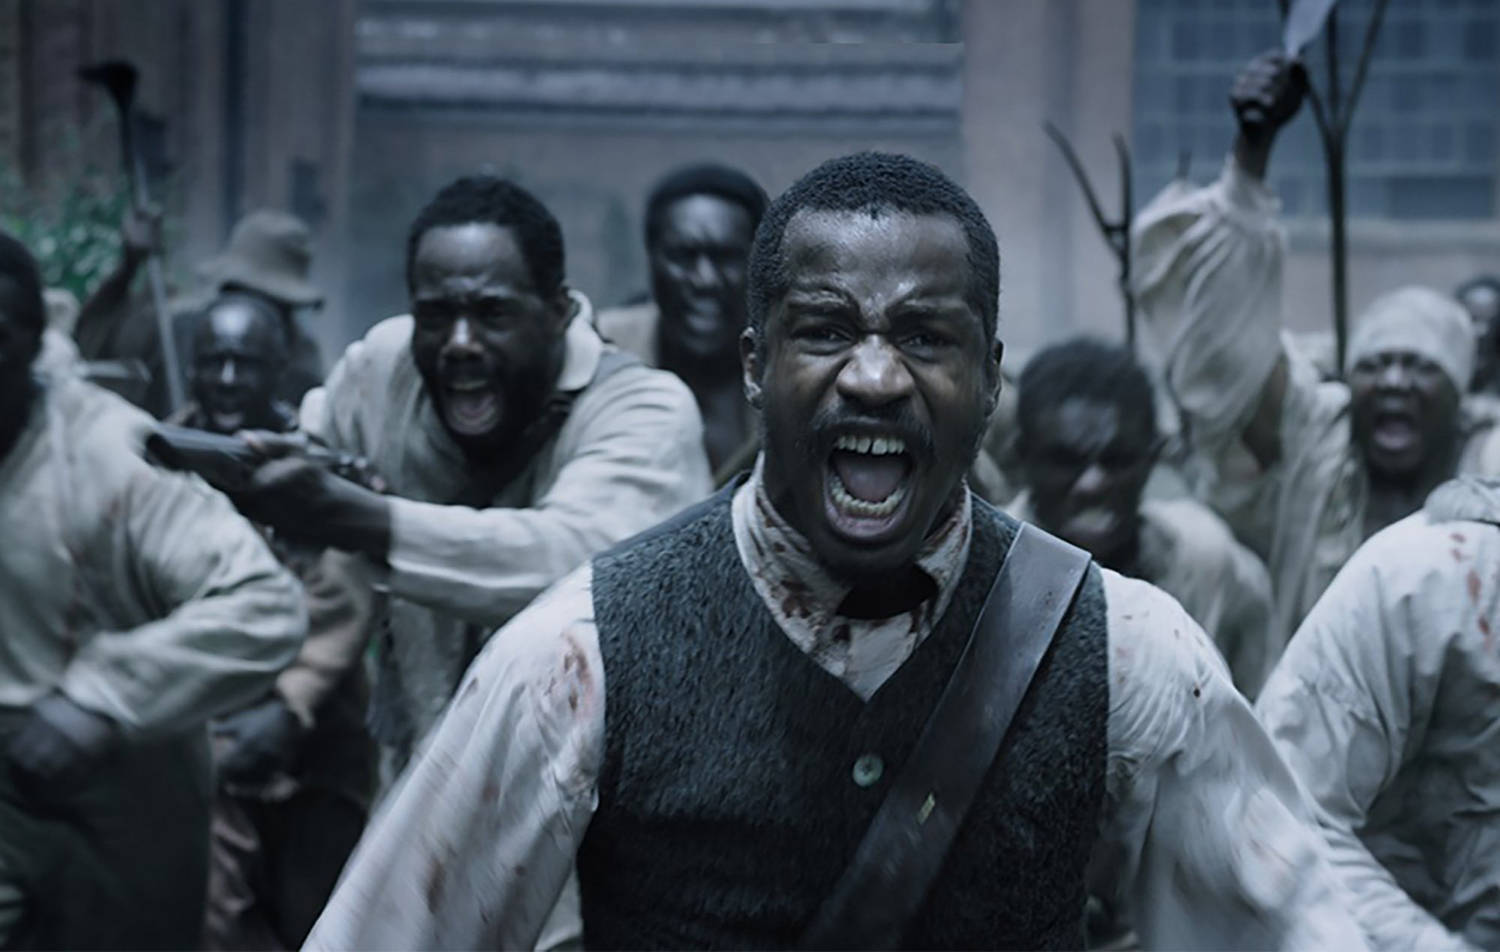 The Birth of a Nation / Bir Ulusun Doğuşu